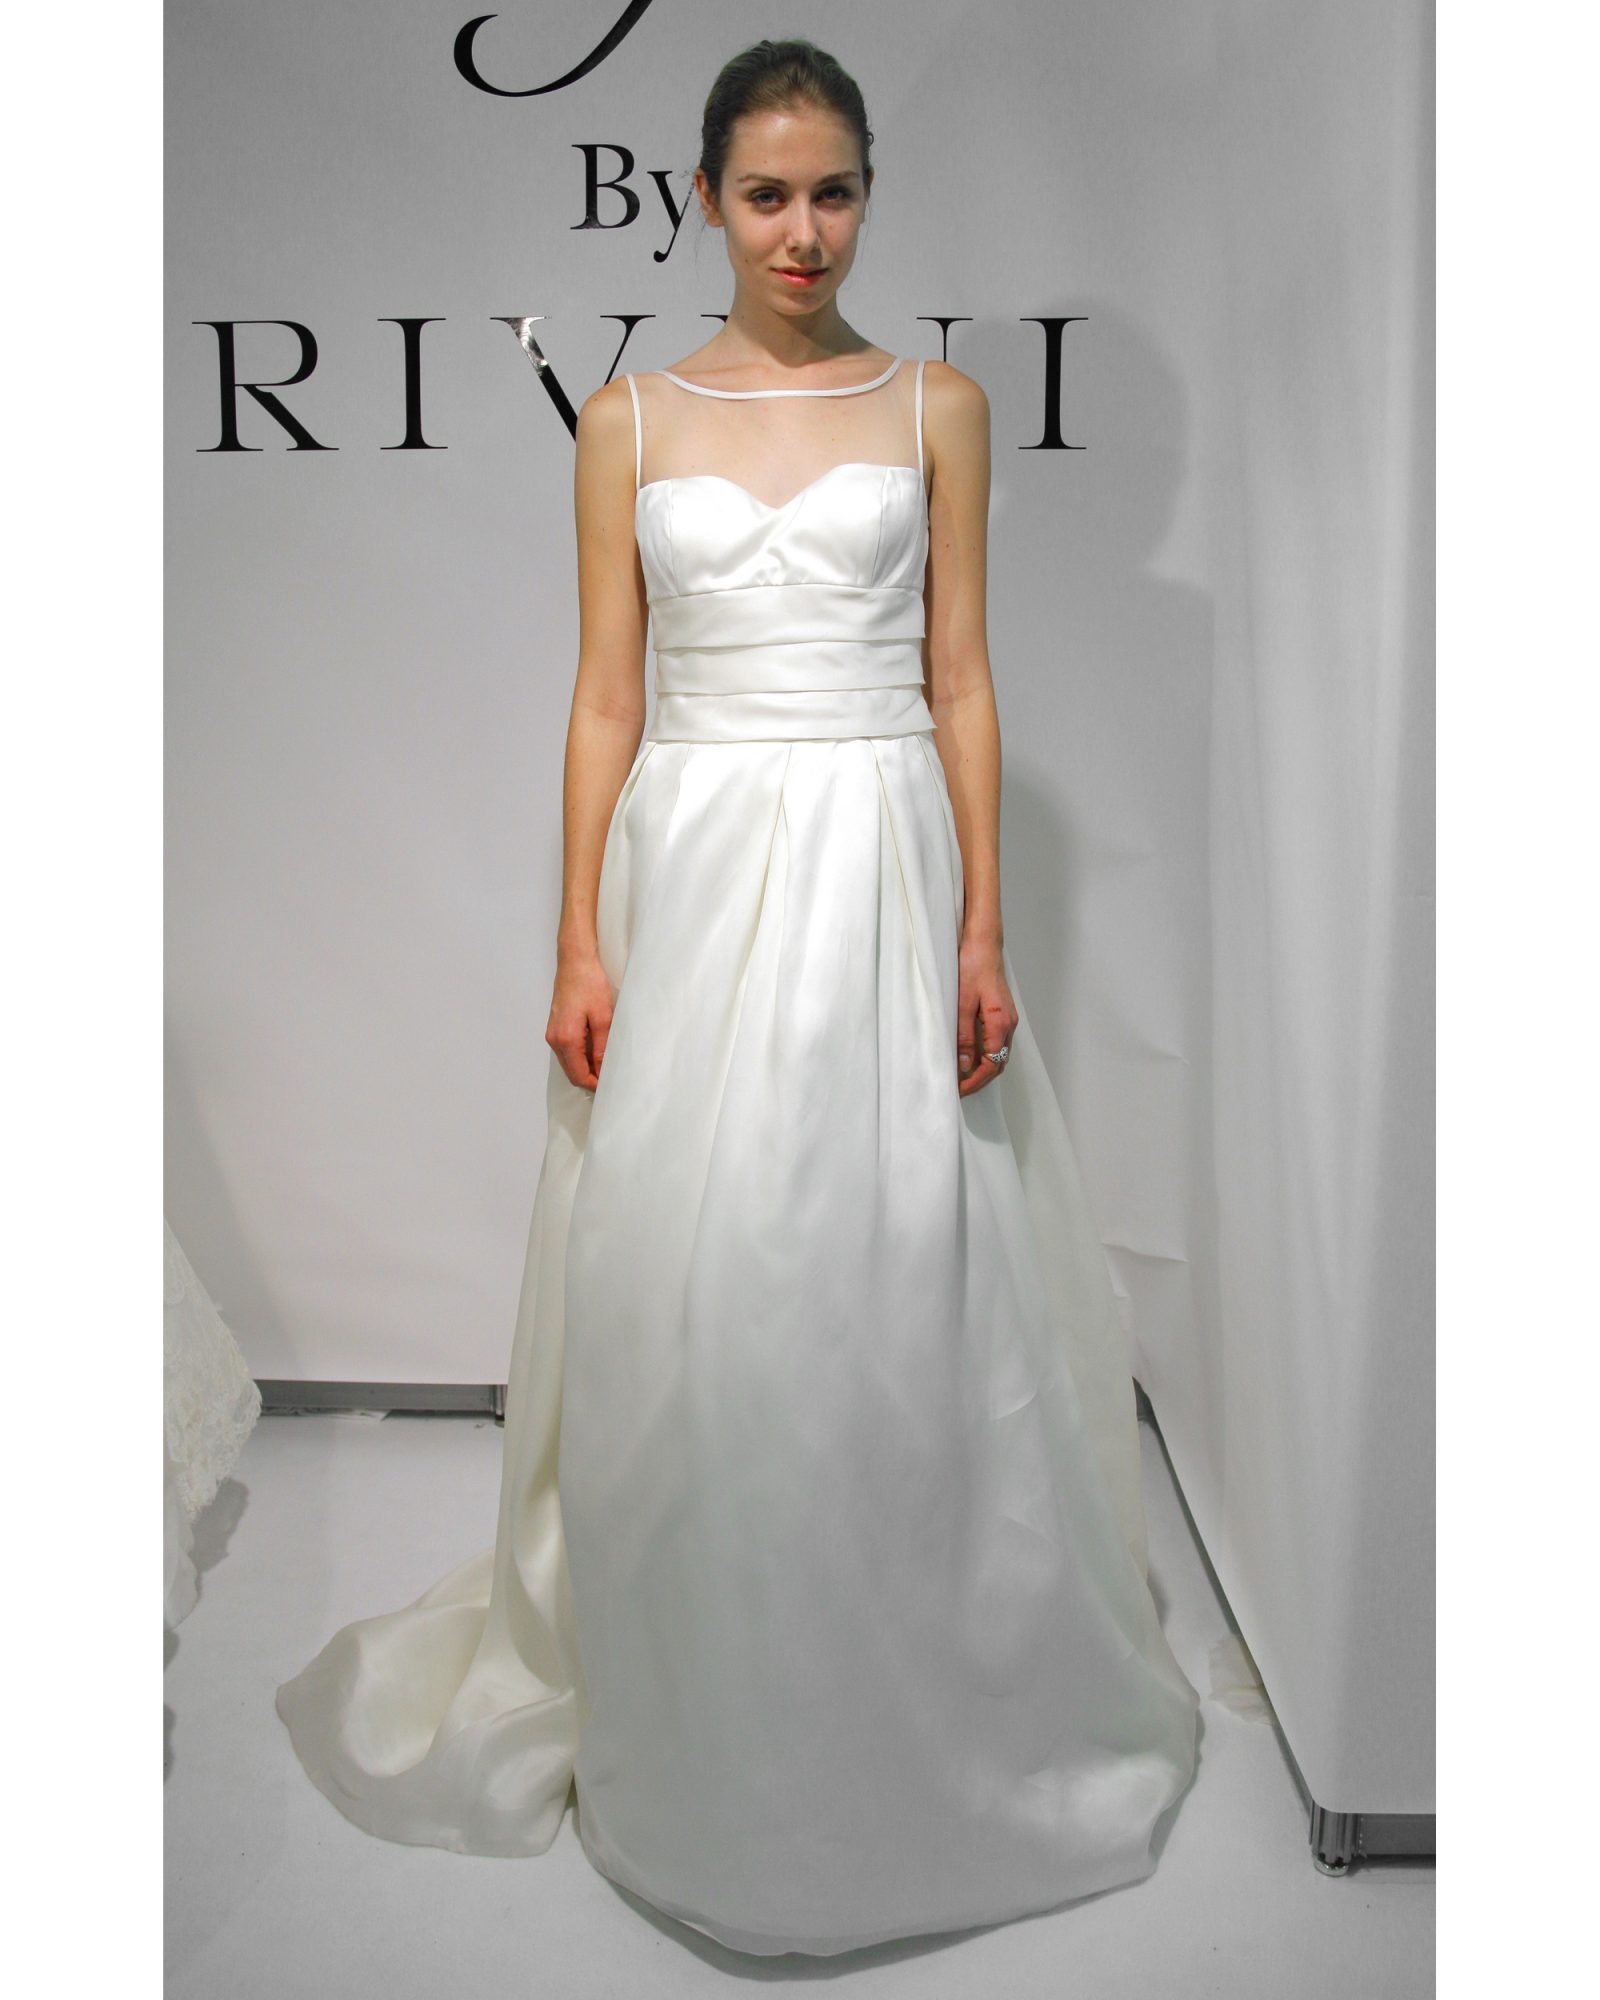 alyne-by-rivini-fall2012-wd108109-002.jpg